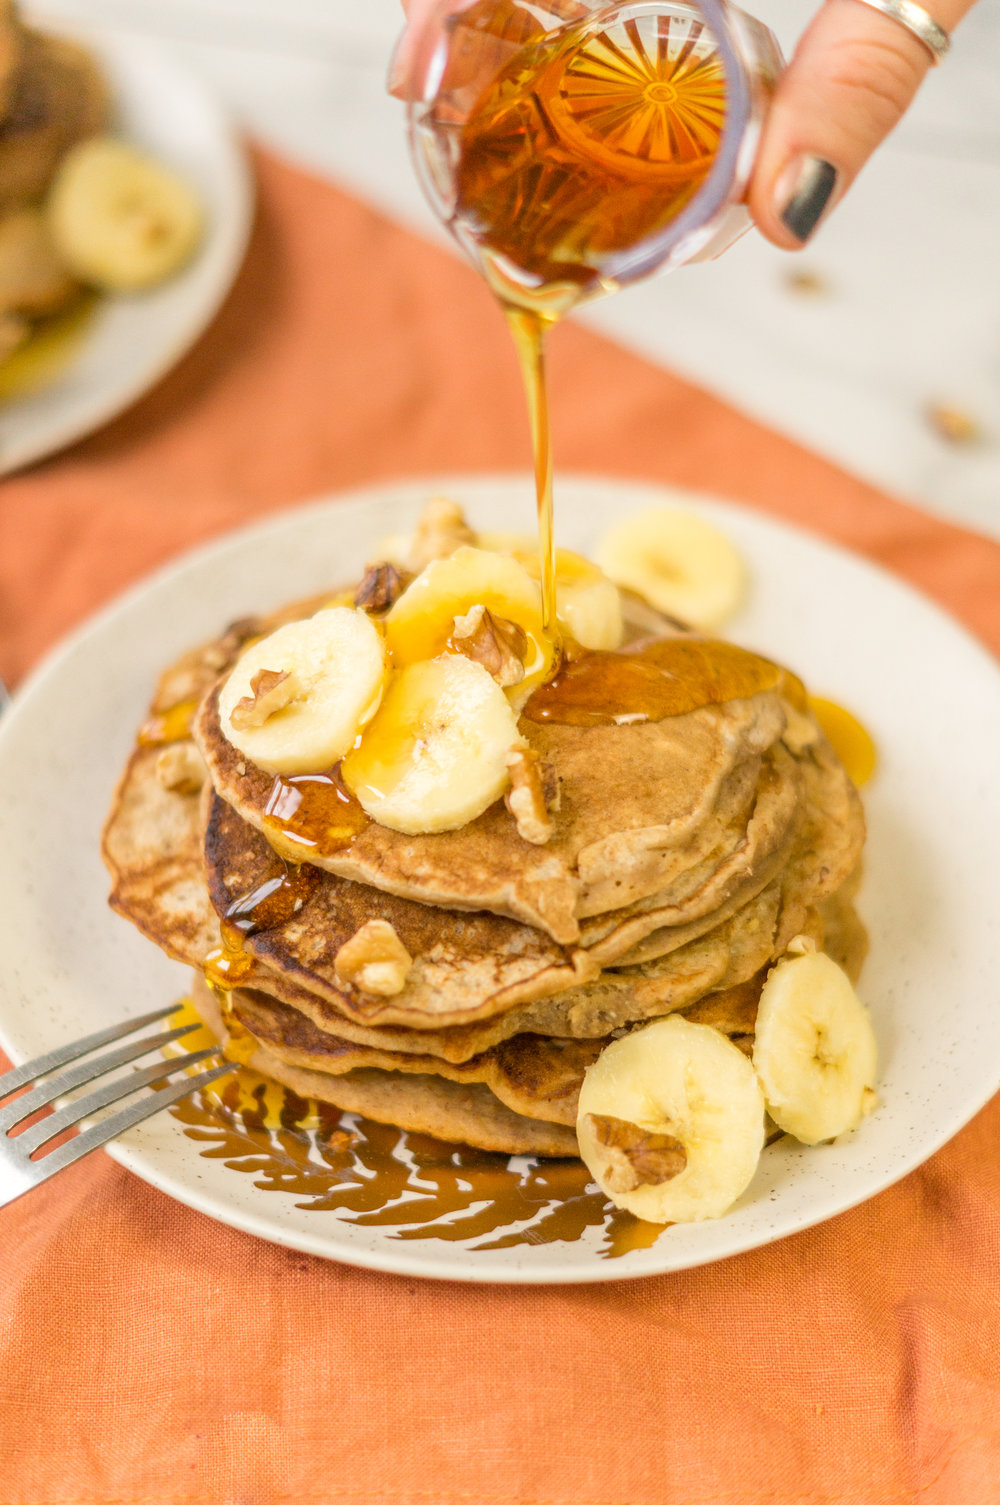 i am rorie, i am rorie recipes, whole foods, vegan food, vegan breakfast, vegan food, vegan breakfast recipes, breakfast recipes, pancake mix, bob's red mill, bob's red mill pancake mix, pancake mix, gluten free pancake mix, paleo pancake mix, gf pancake mix, bananas, mashed bananas, bananas as egg substitute, sub banana for eggs, egg substitute, cinnamon, cinnamon powder, ground cinnamon, vegetable oil, canola oil, milk, almond milk, plant milk, nondairy milk, vegan milk, vegan weekend, vegan brunch, vegan pancakes, easy pancake recipe, quick pancake recipe, banana walnut pancakes, chicago vegan blog, vegan blogger, vegan recipes, chicago blogger, food blogger, vegan food blogger, delicious vegan food, i am rorie food, vegan comfort food, lazy vegan food, easy vegan recipe, simple vegan breakfast, simple vegan recipe